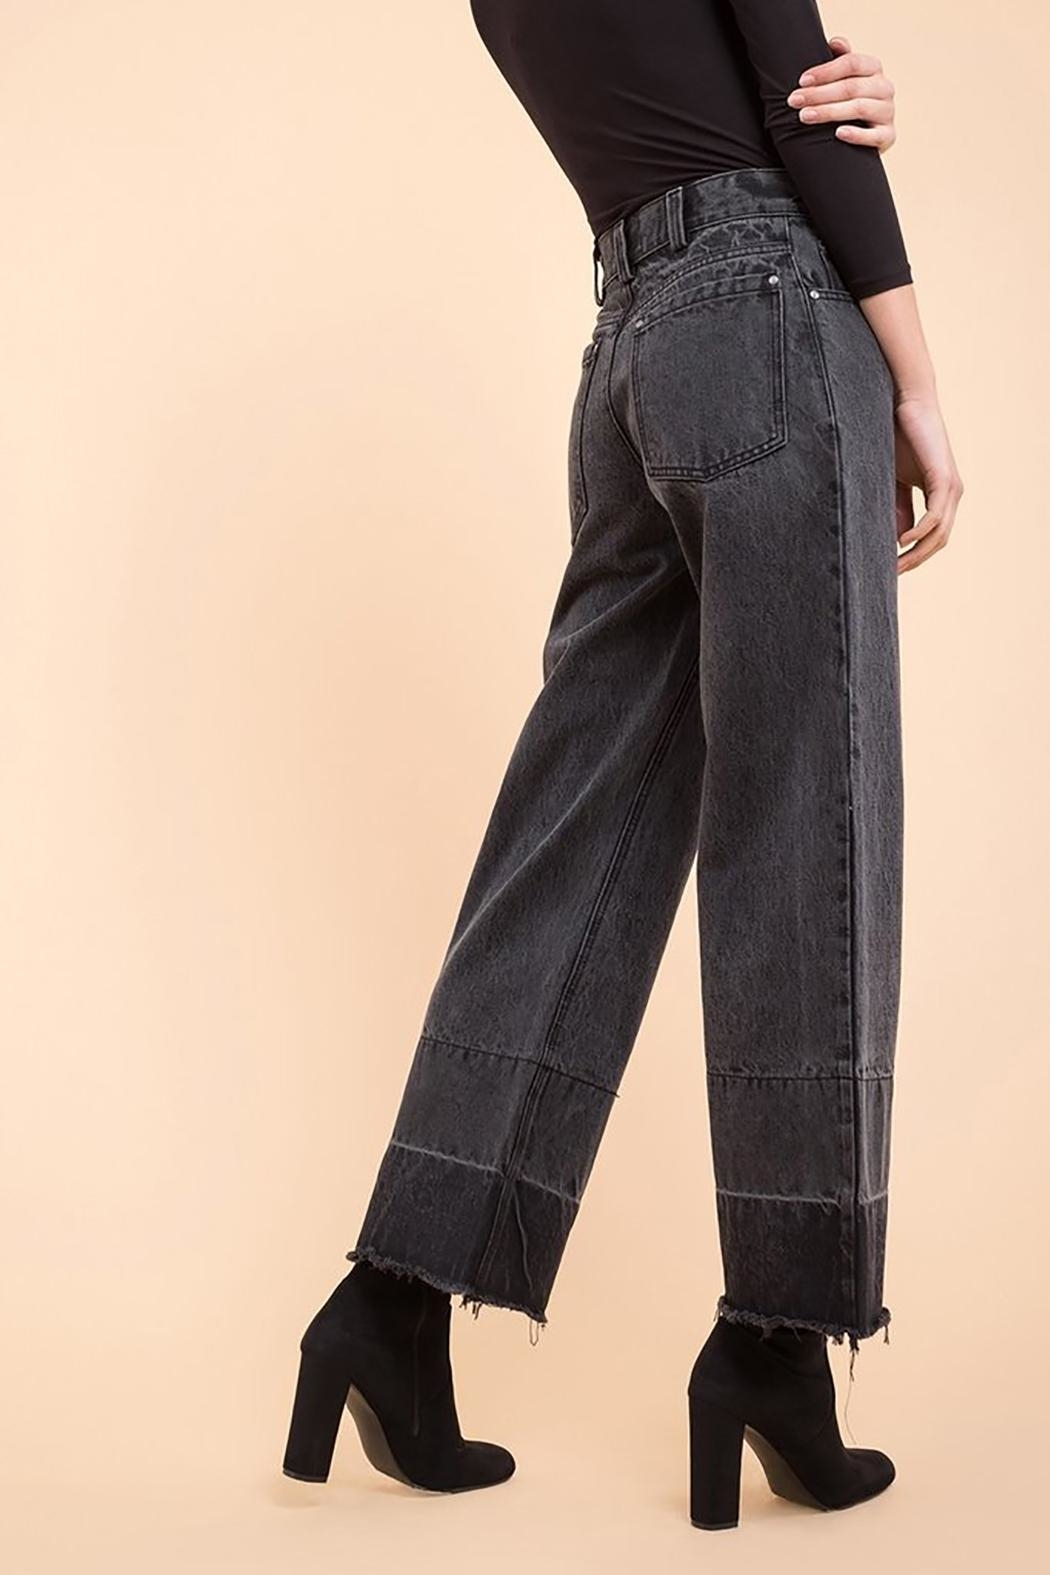 EVIDNT Two-Tone Wide-Leg Jeans - Front Full Image